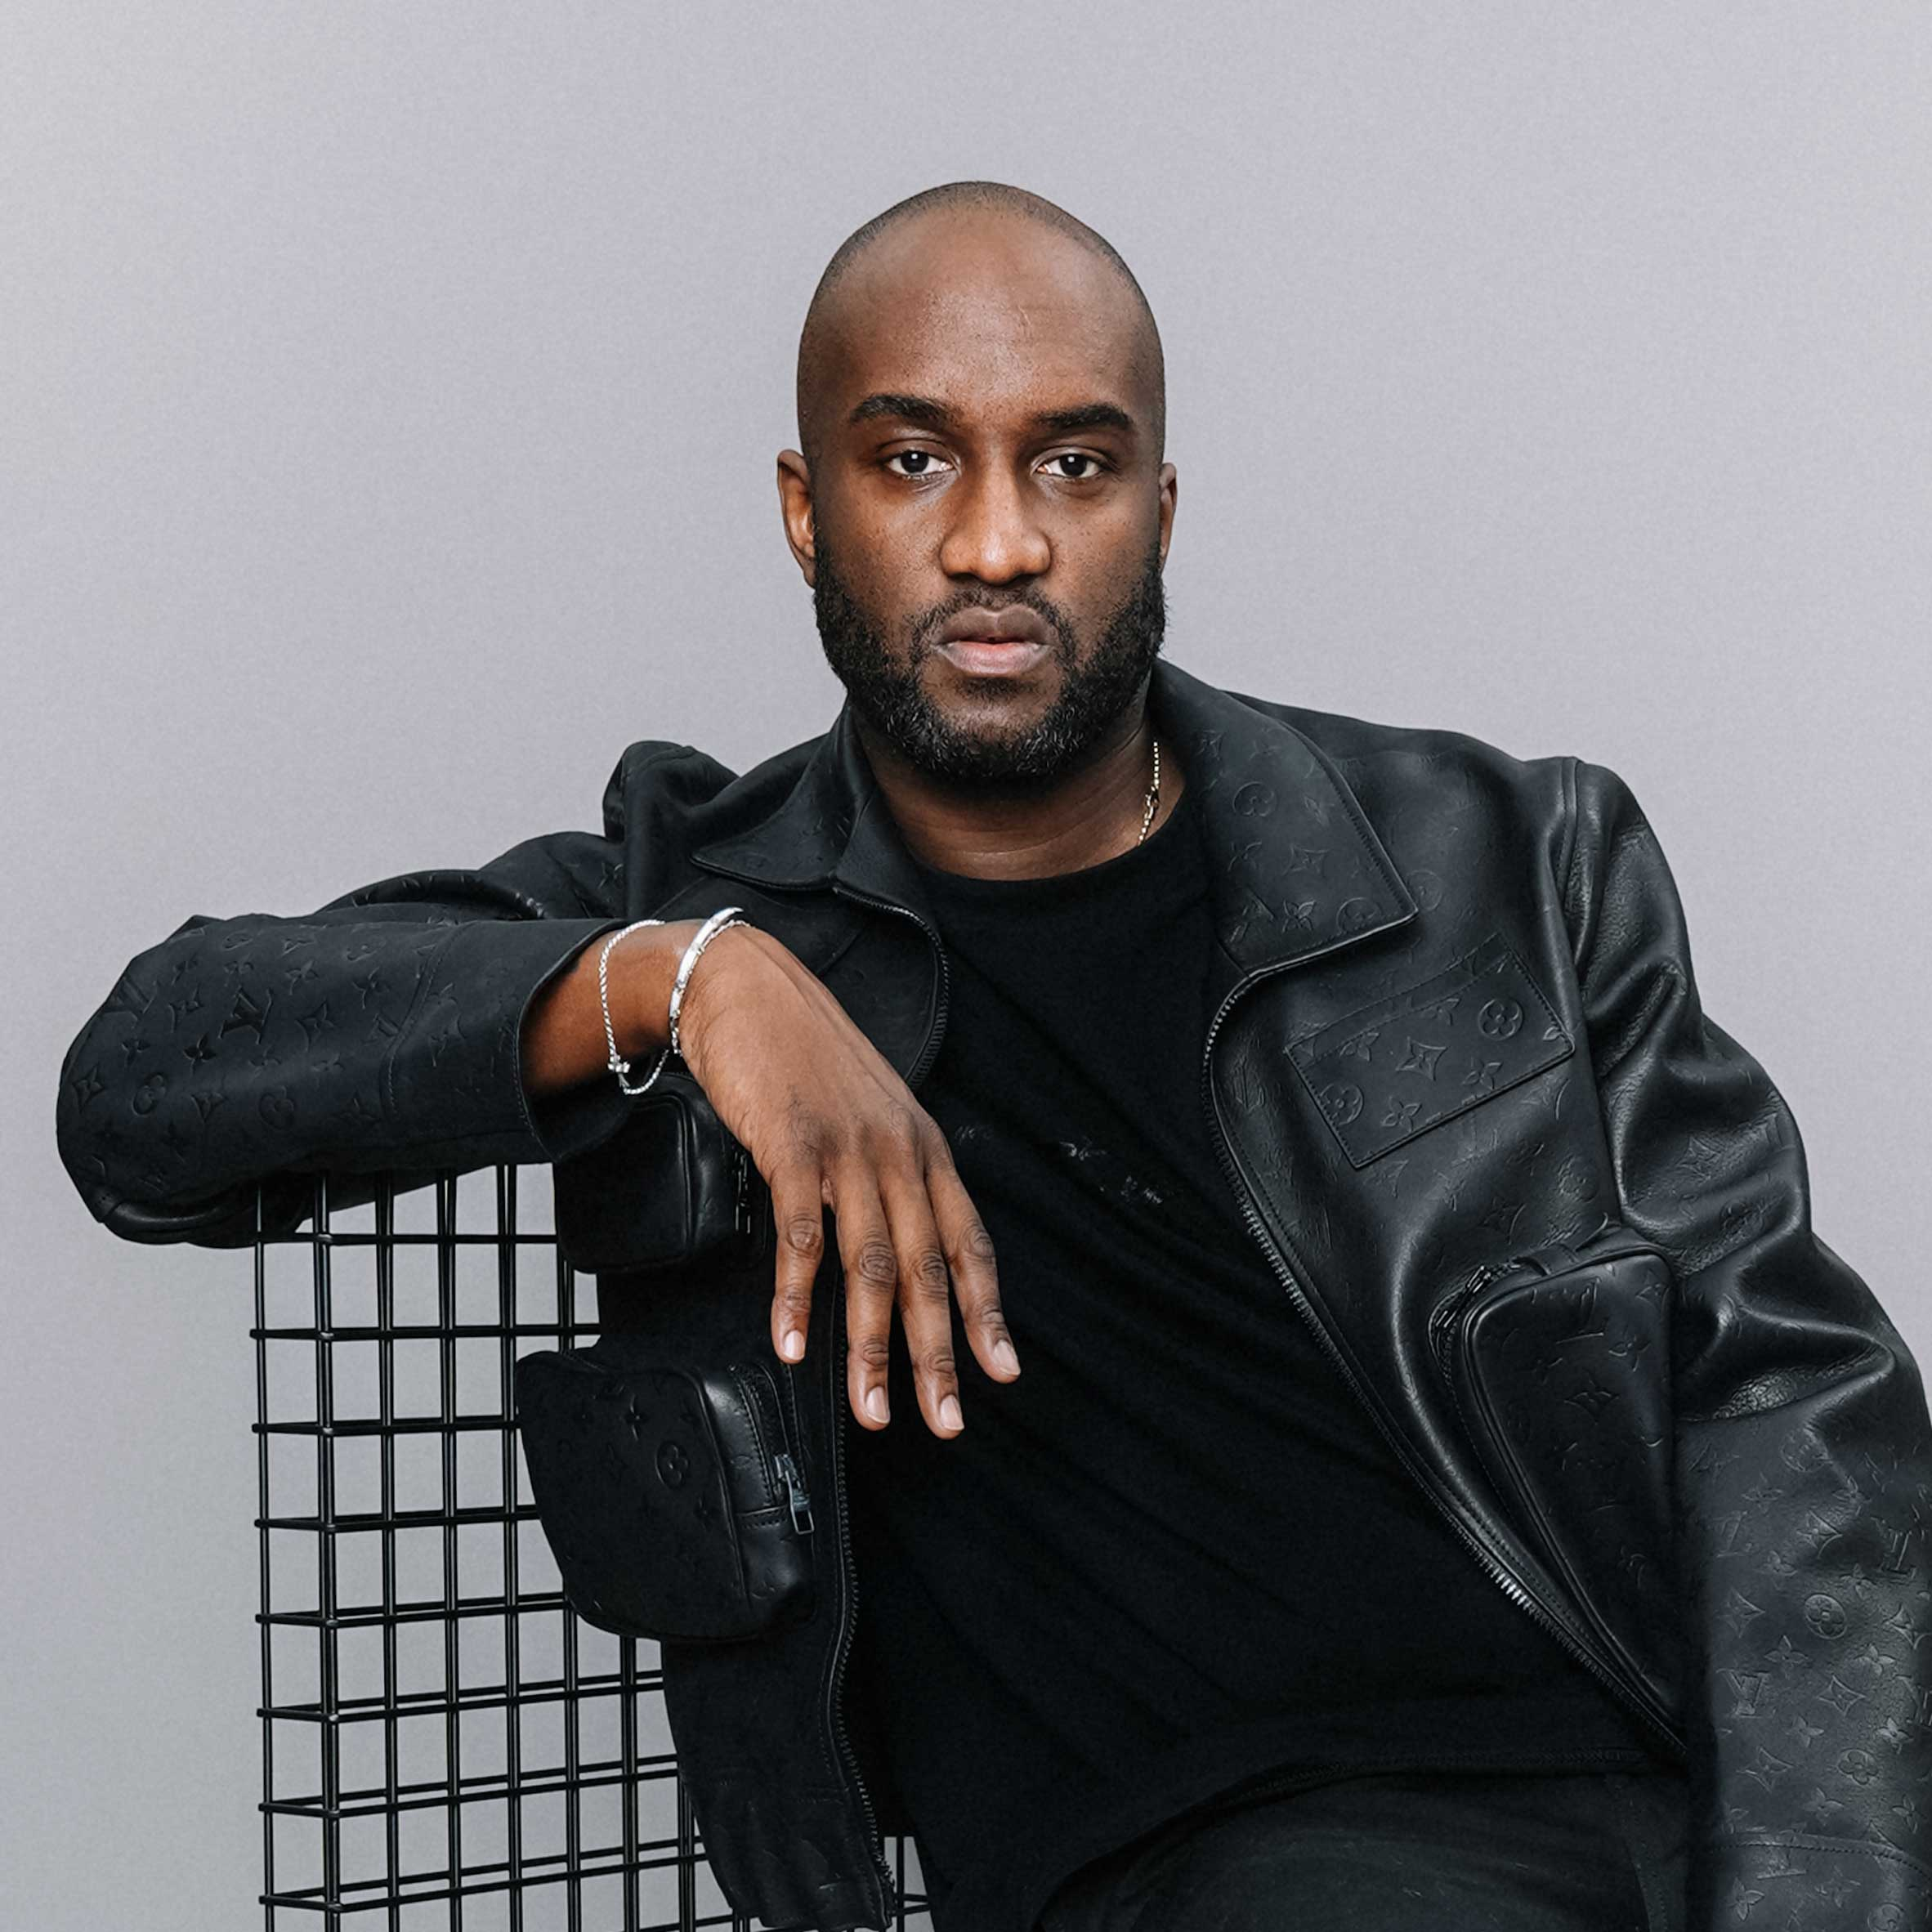 QM to present exhibition of Virgil Abloh in November